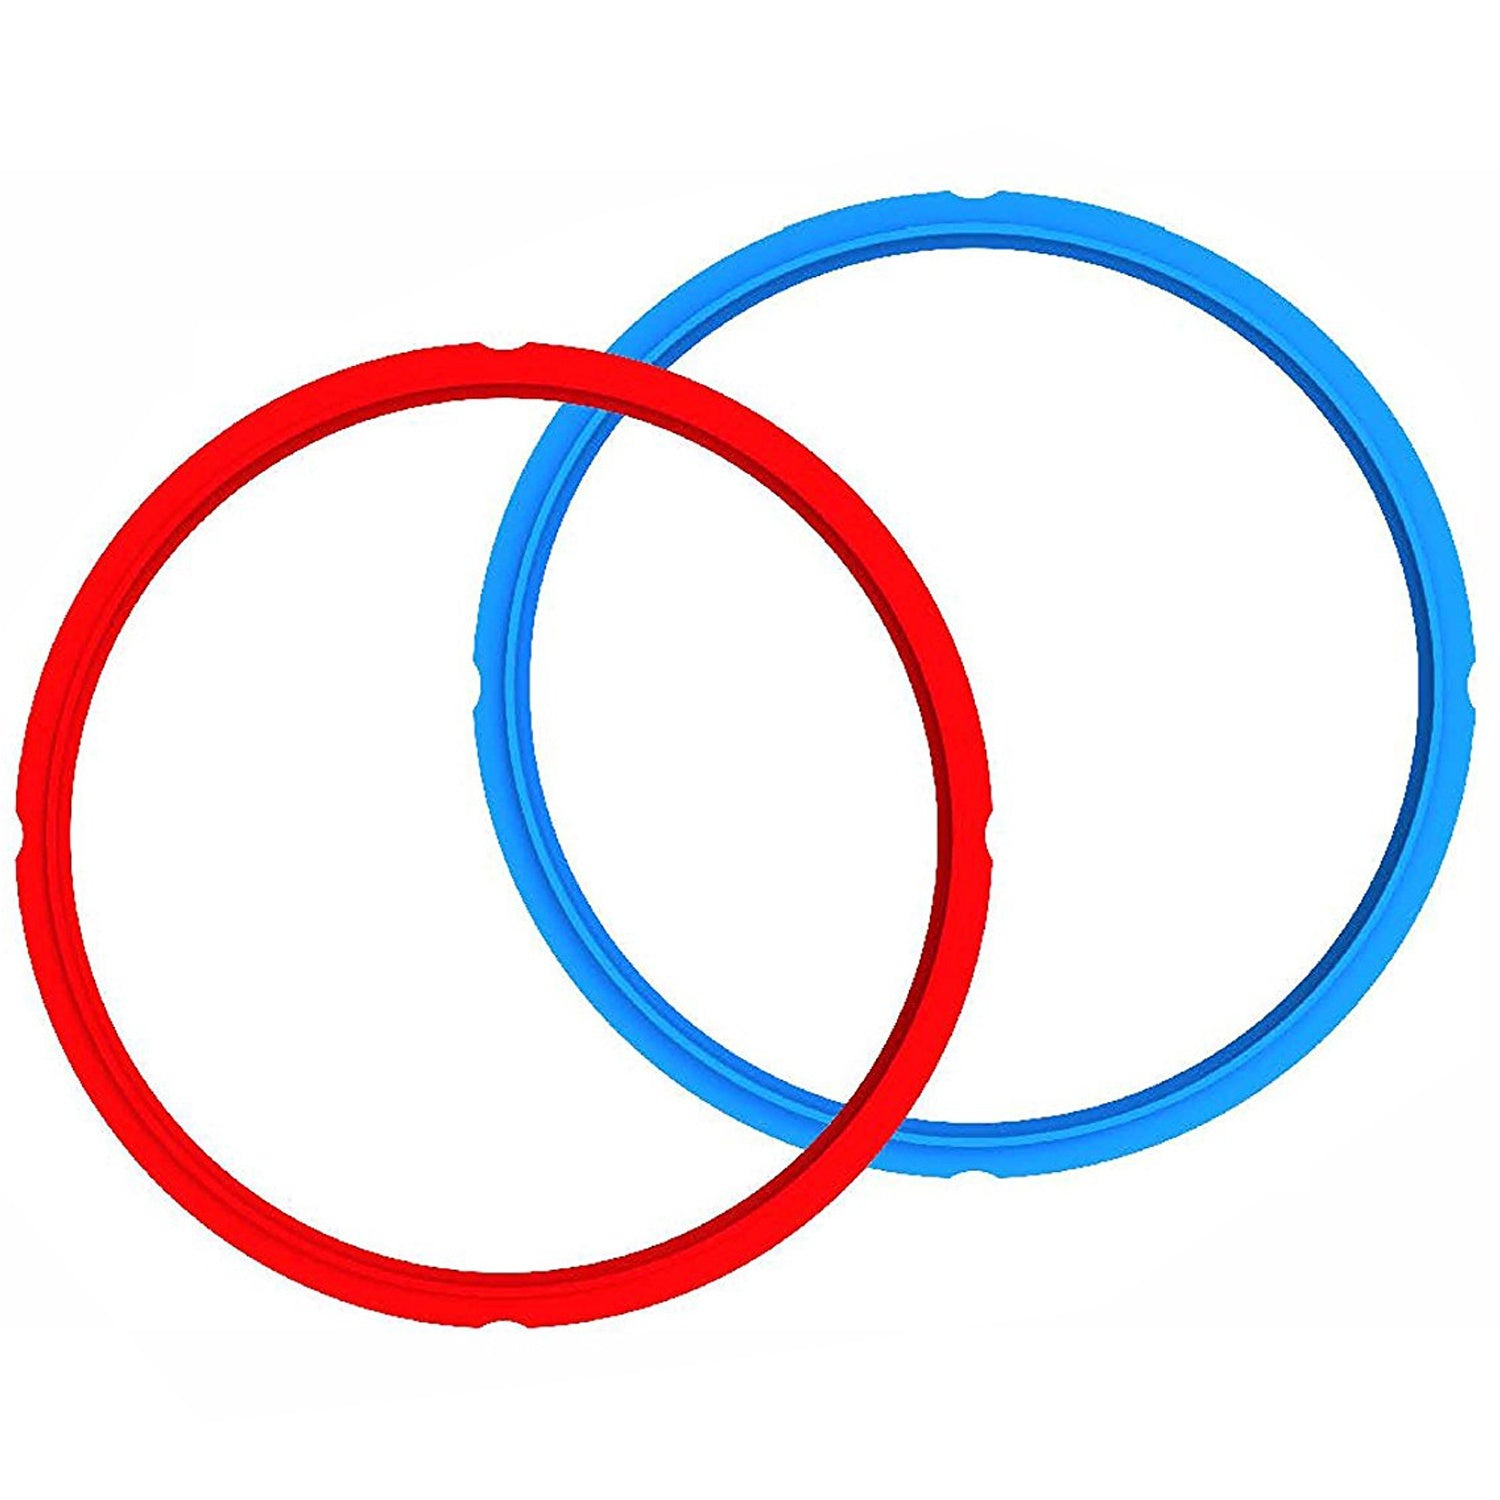 Instant Pot Accessories-8L Silicone Sealing Ring (Red&Blue)-2 Pack-211-0009-01